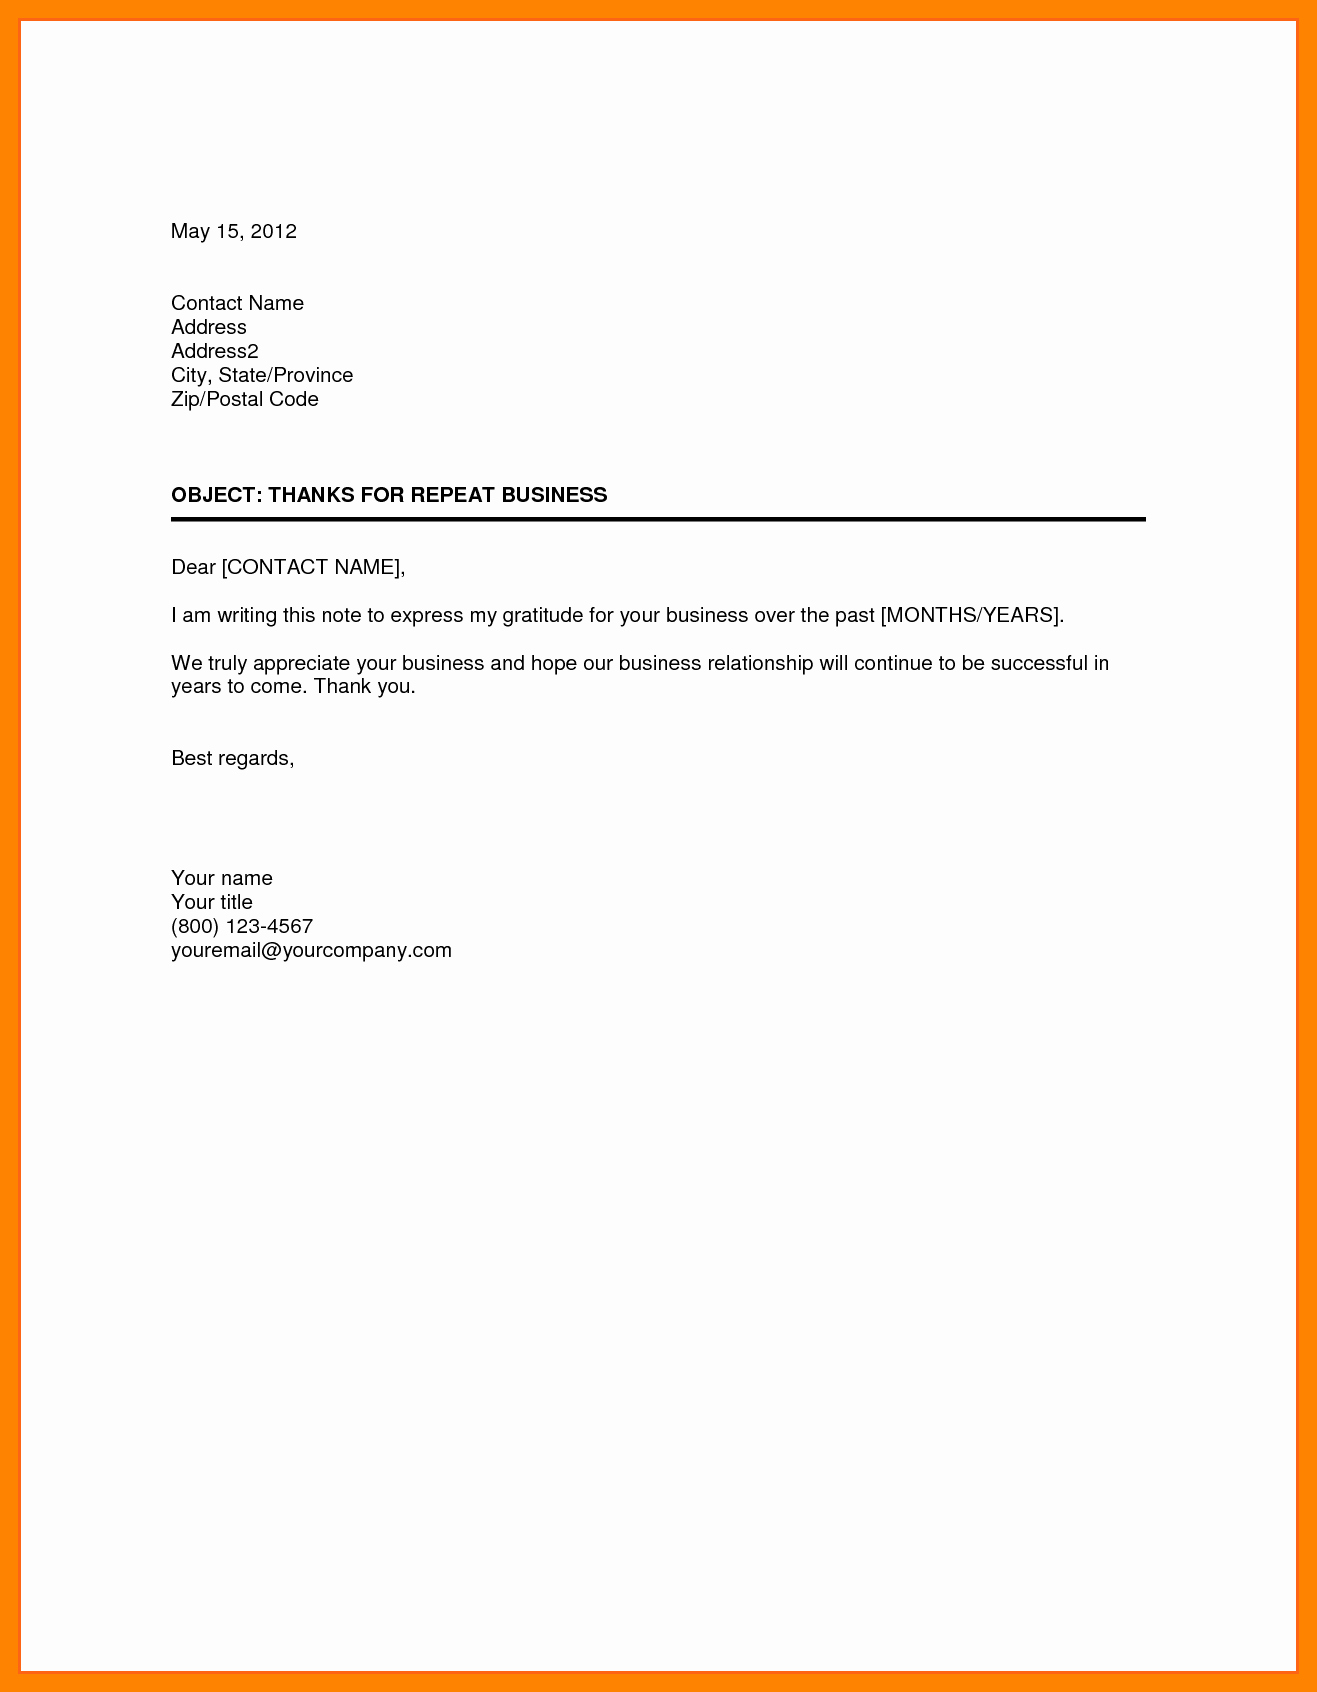 Sample Of formal Business Letter Elegant Business Letter format